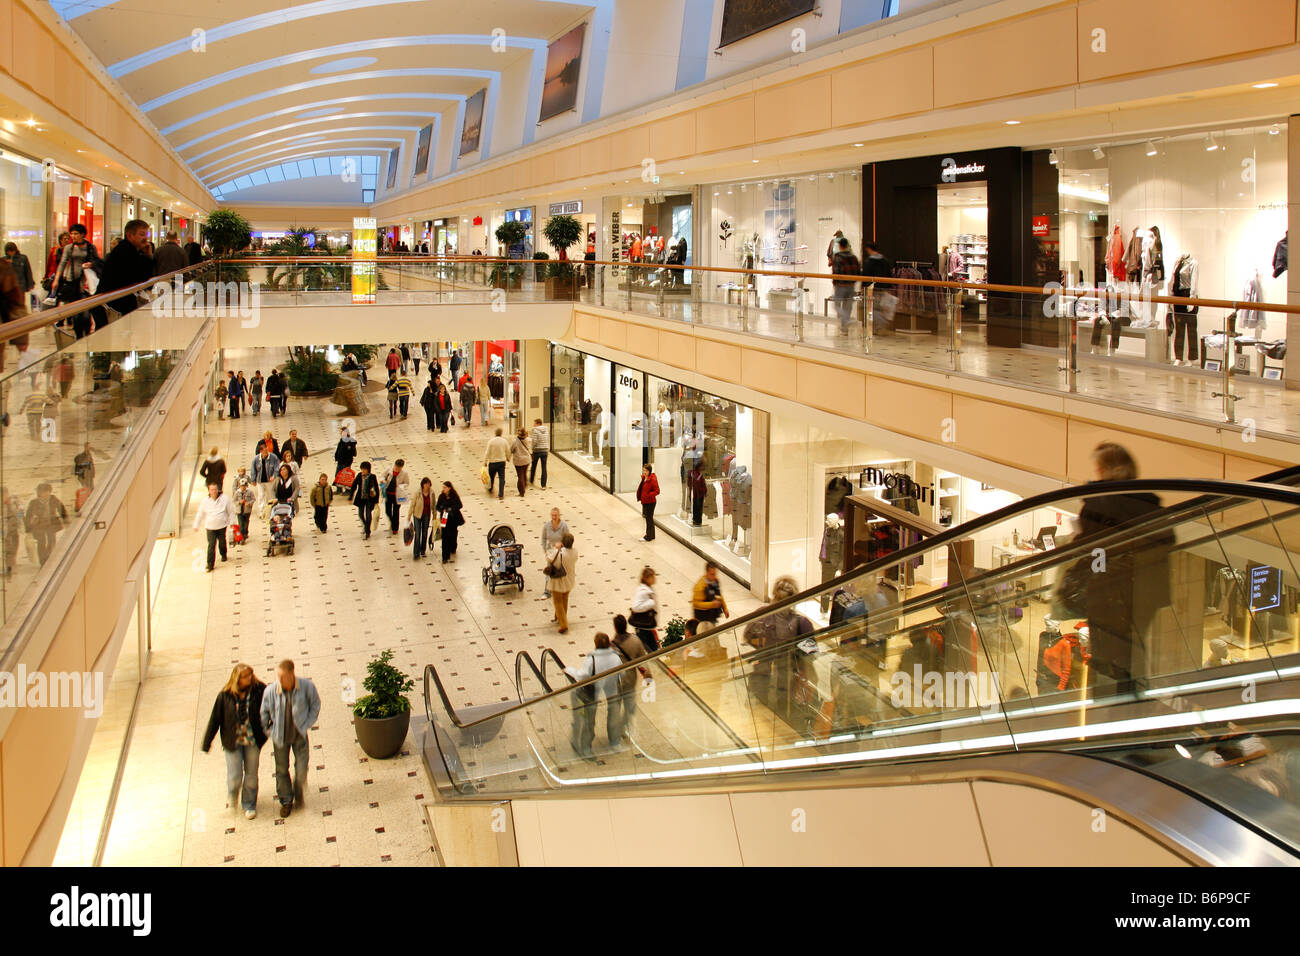 escalator in shopping centre nova eventis in g nthersdorf stock photo royalty free image. Black Bedroom Furniture Sets. Home Design Ideas